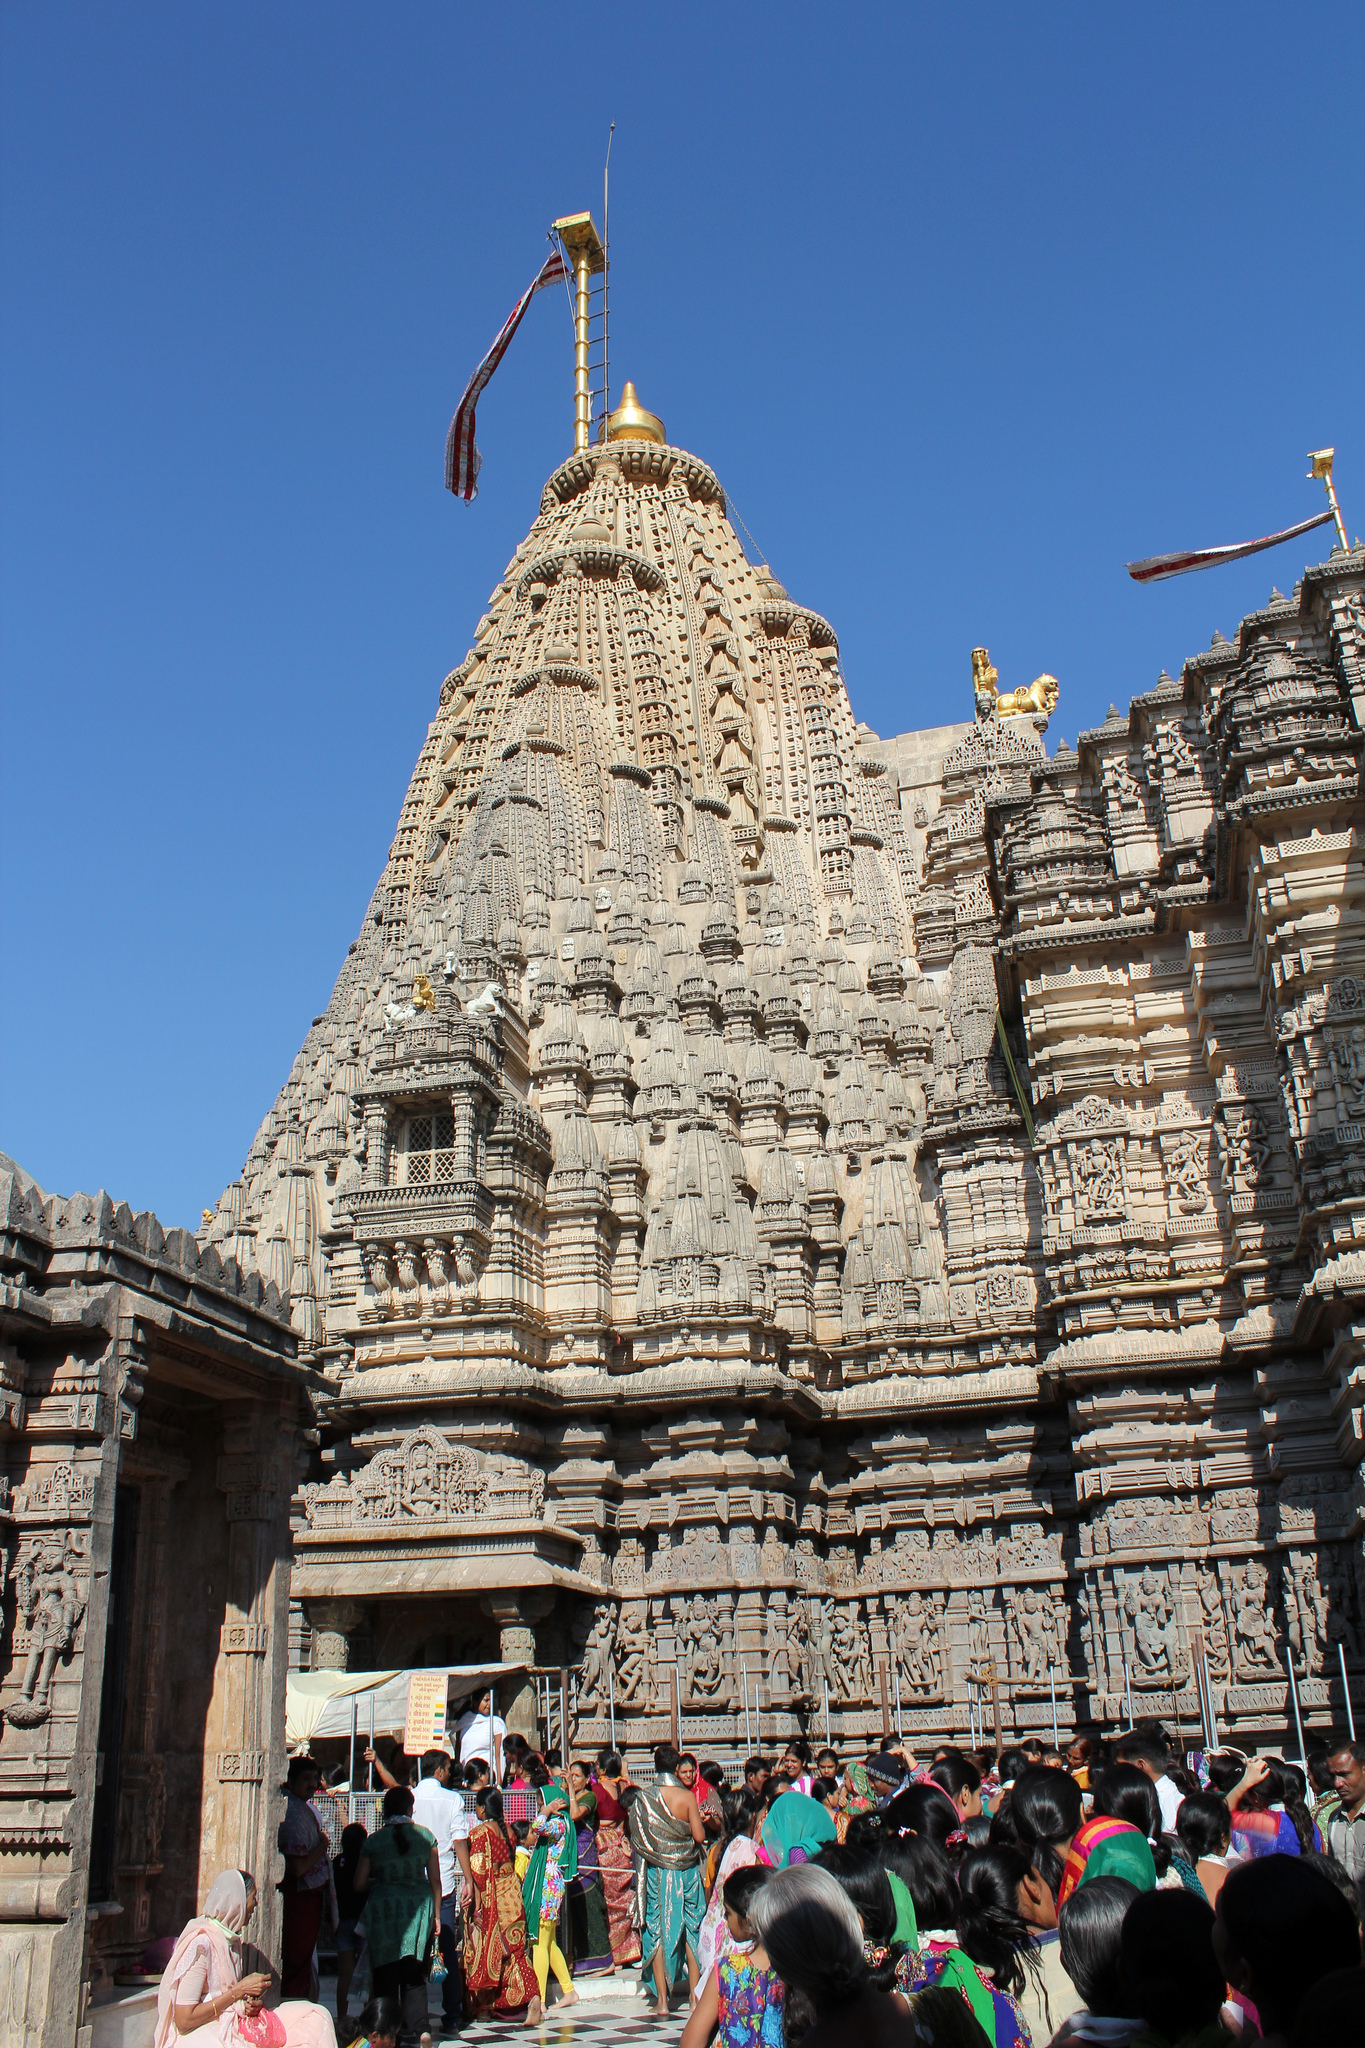 chair for elderly plans adirondack chairs free palitana temples - temple in india thousand wonders